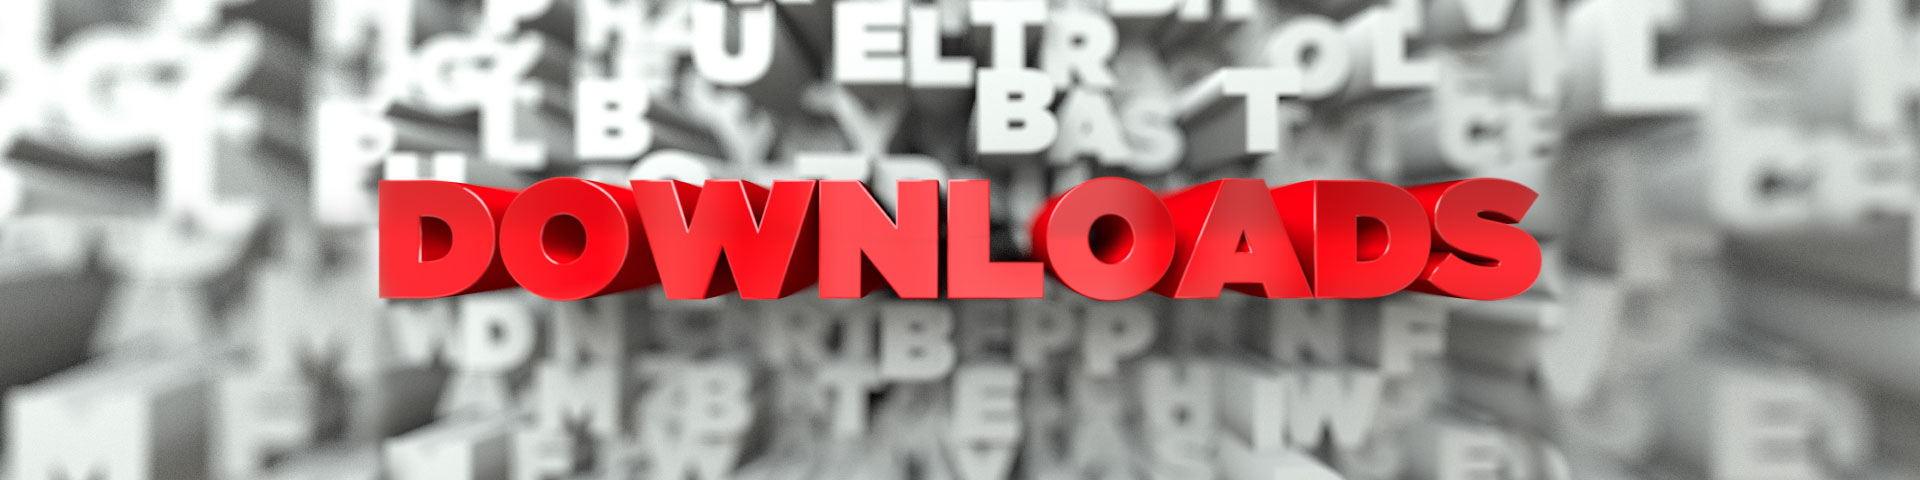 Header schmal downloads